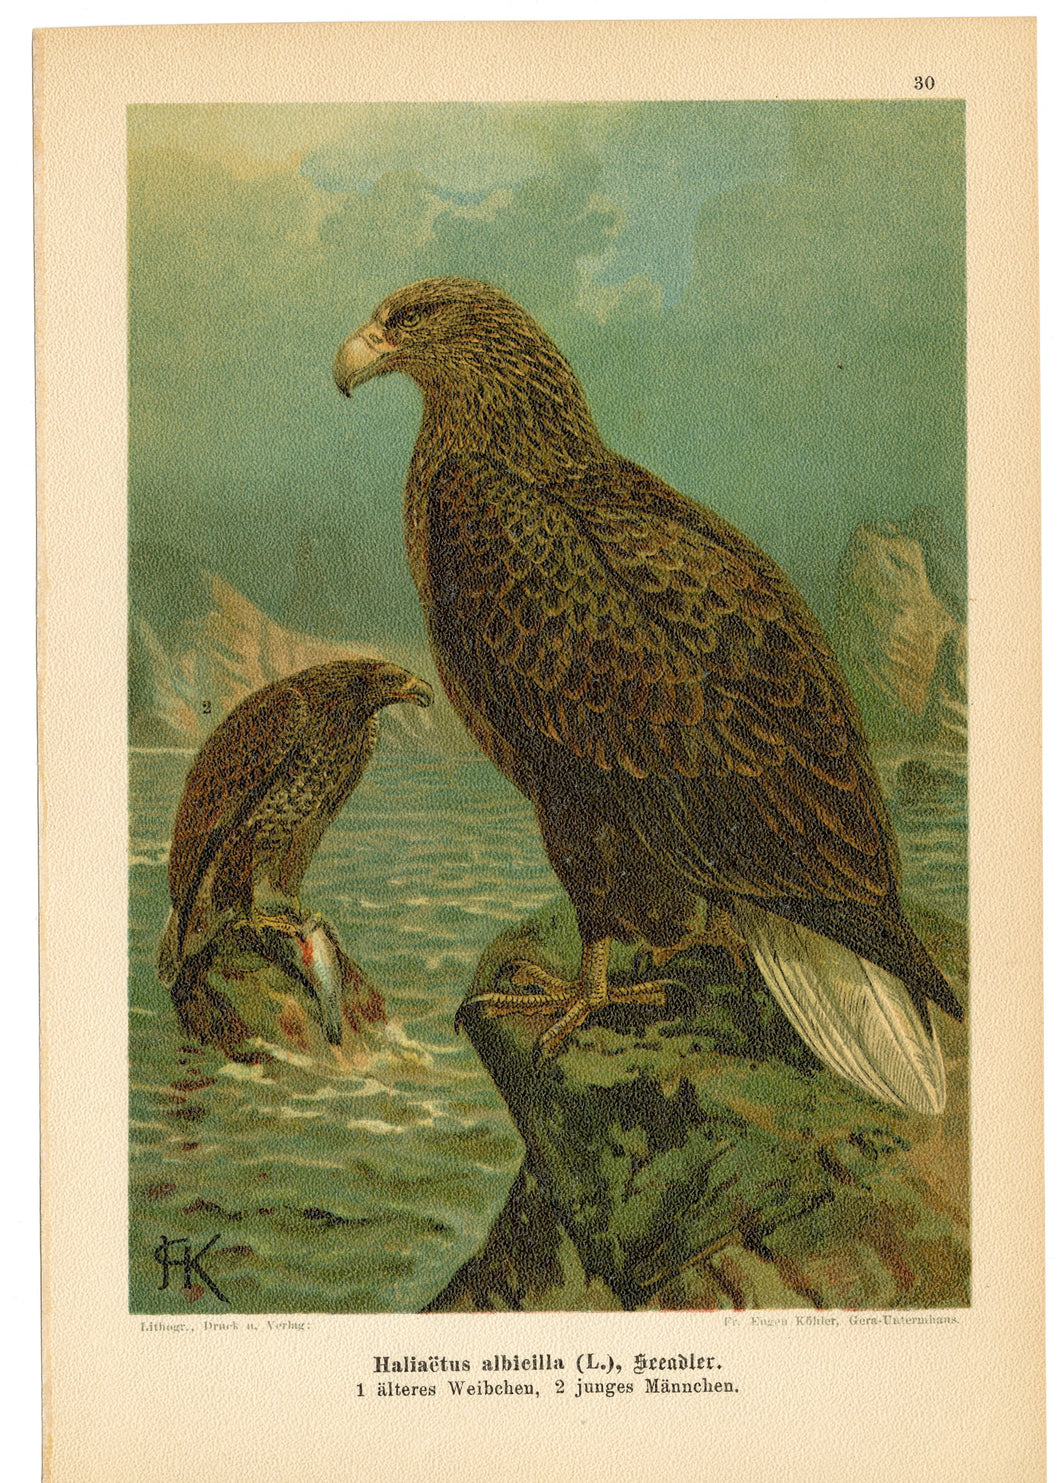 Antique German Scientific Lithographic Print || White Tailed Eagle, Birds